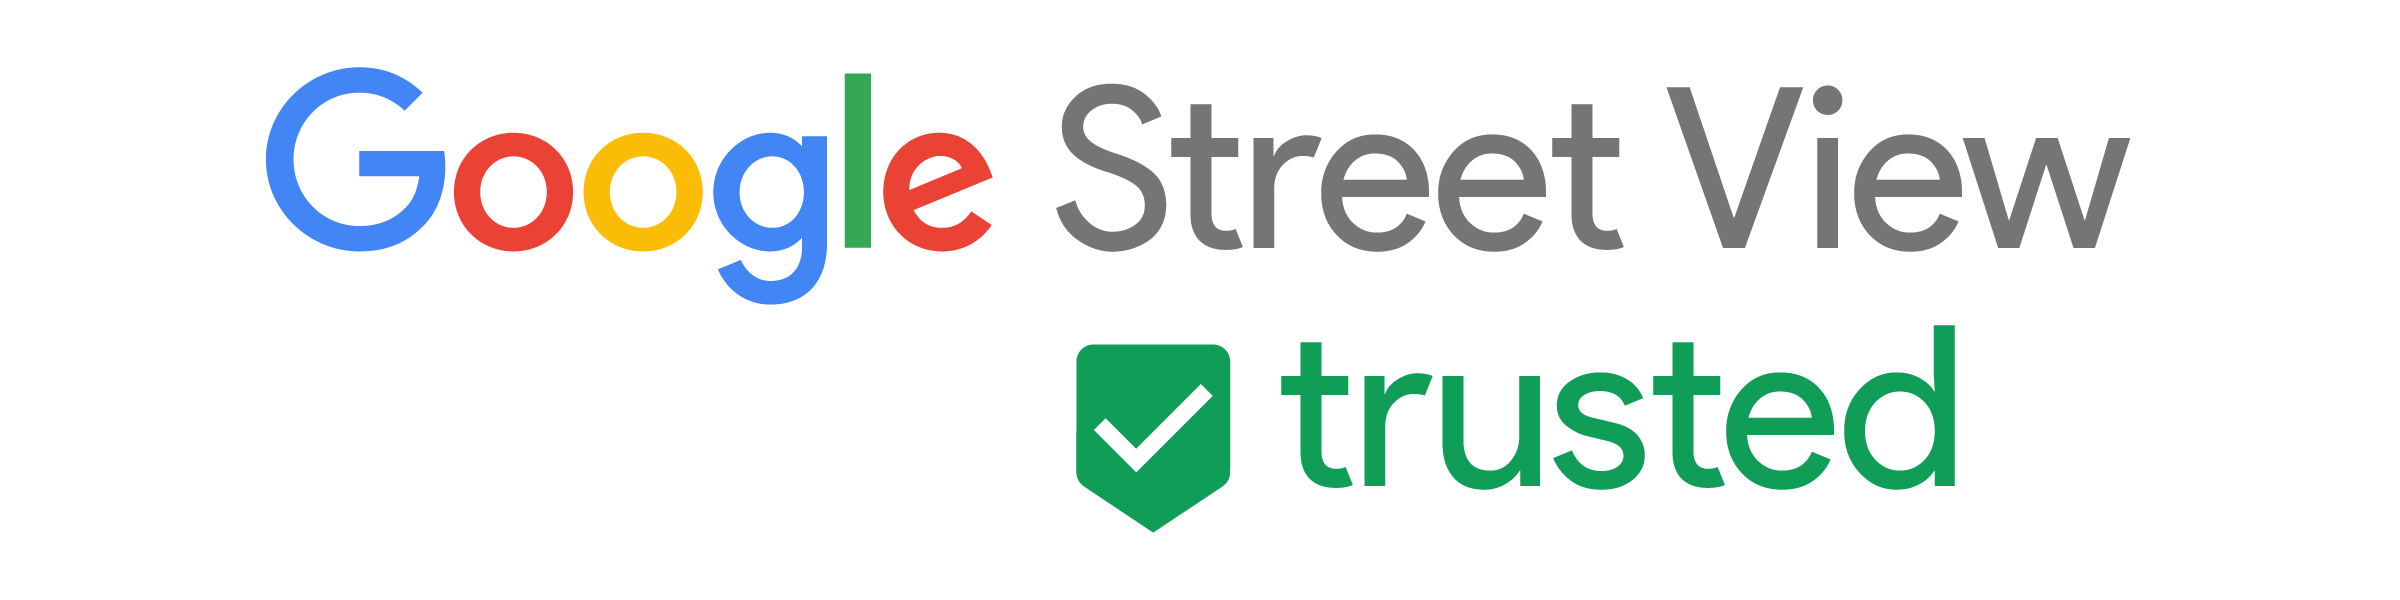 Google Street View trusted photographer badge